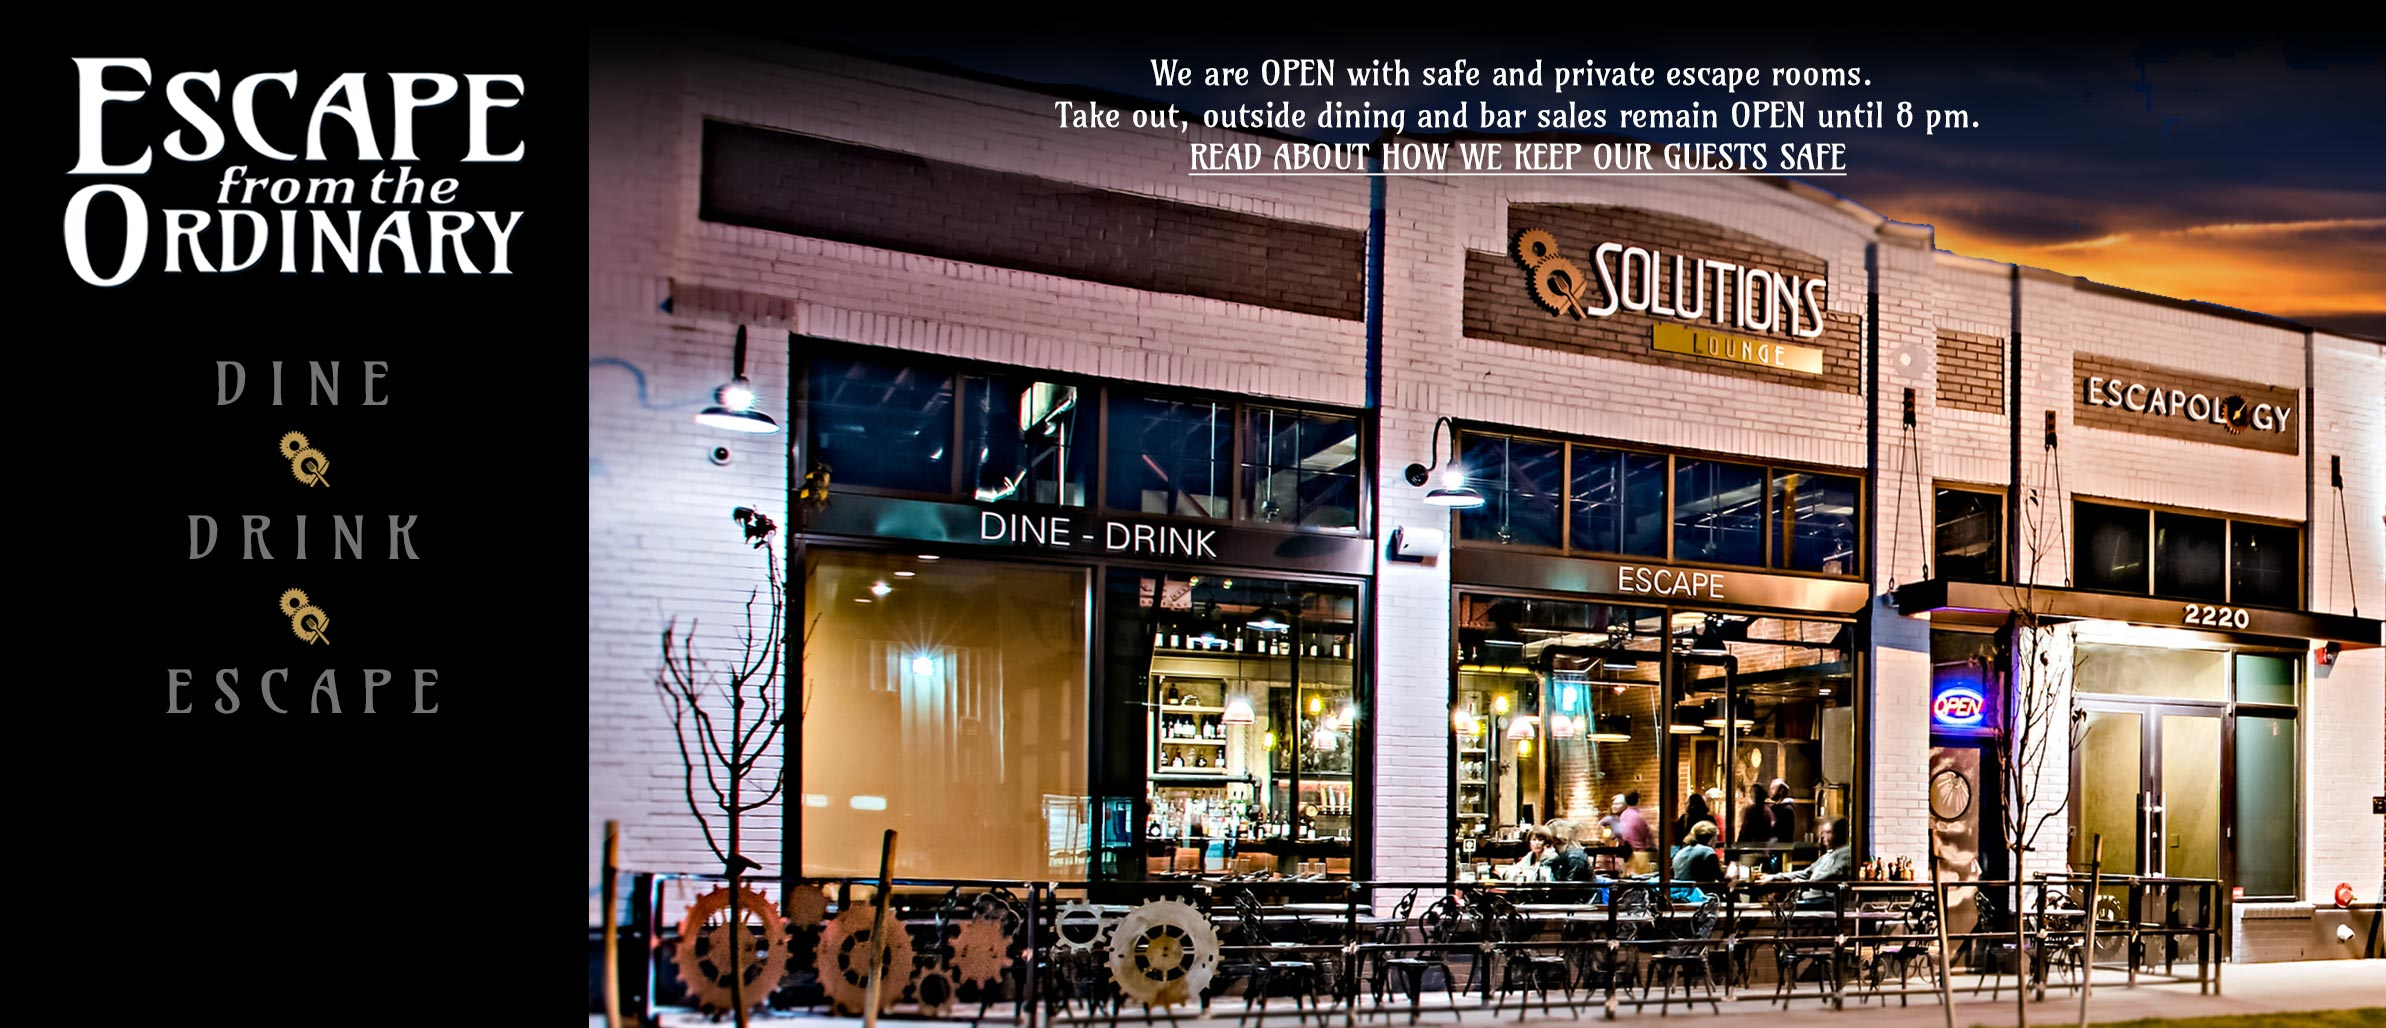 Solutions Lounge--unique among uptown Denver restaurants and bars